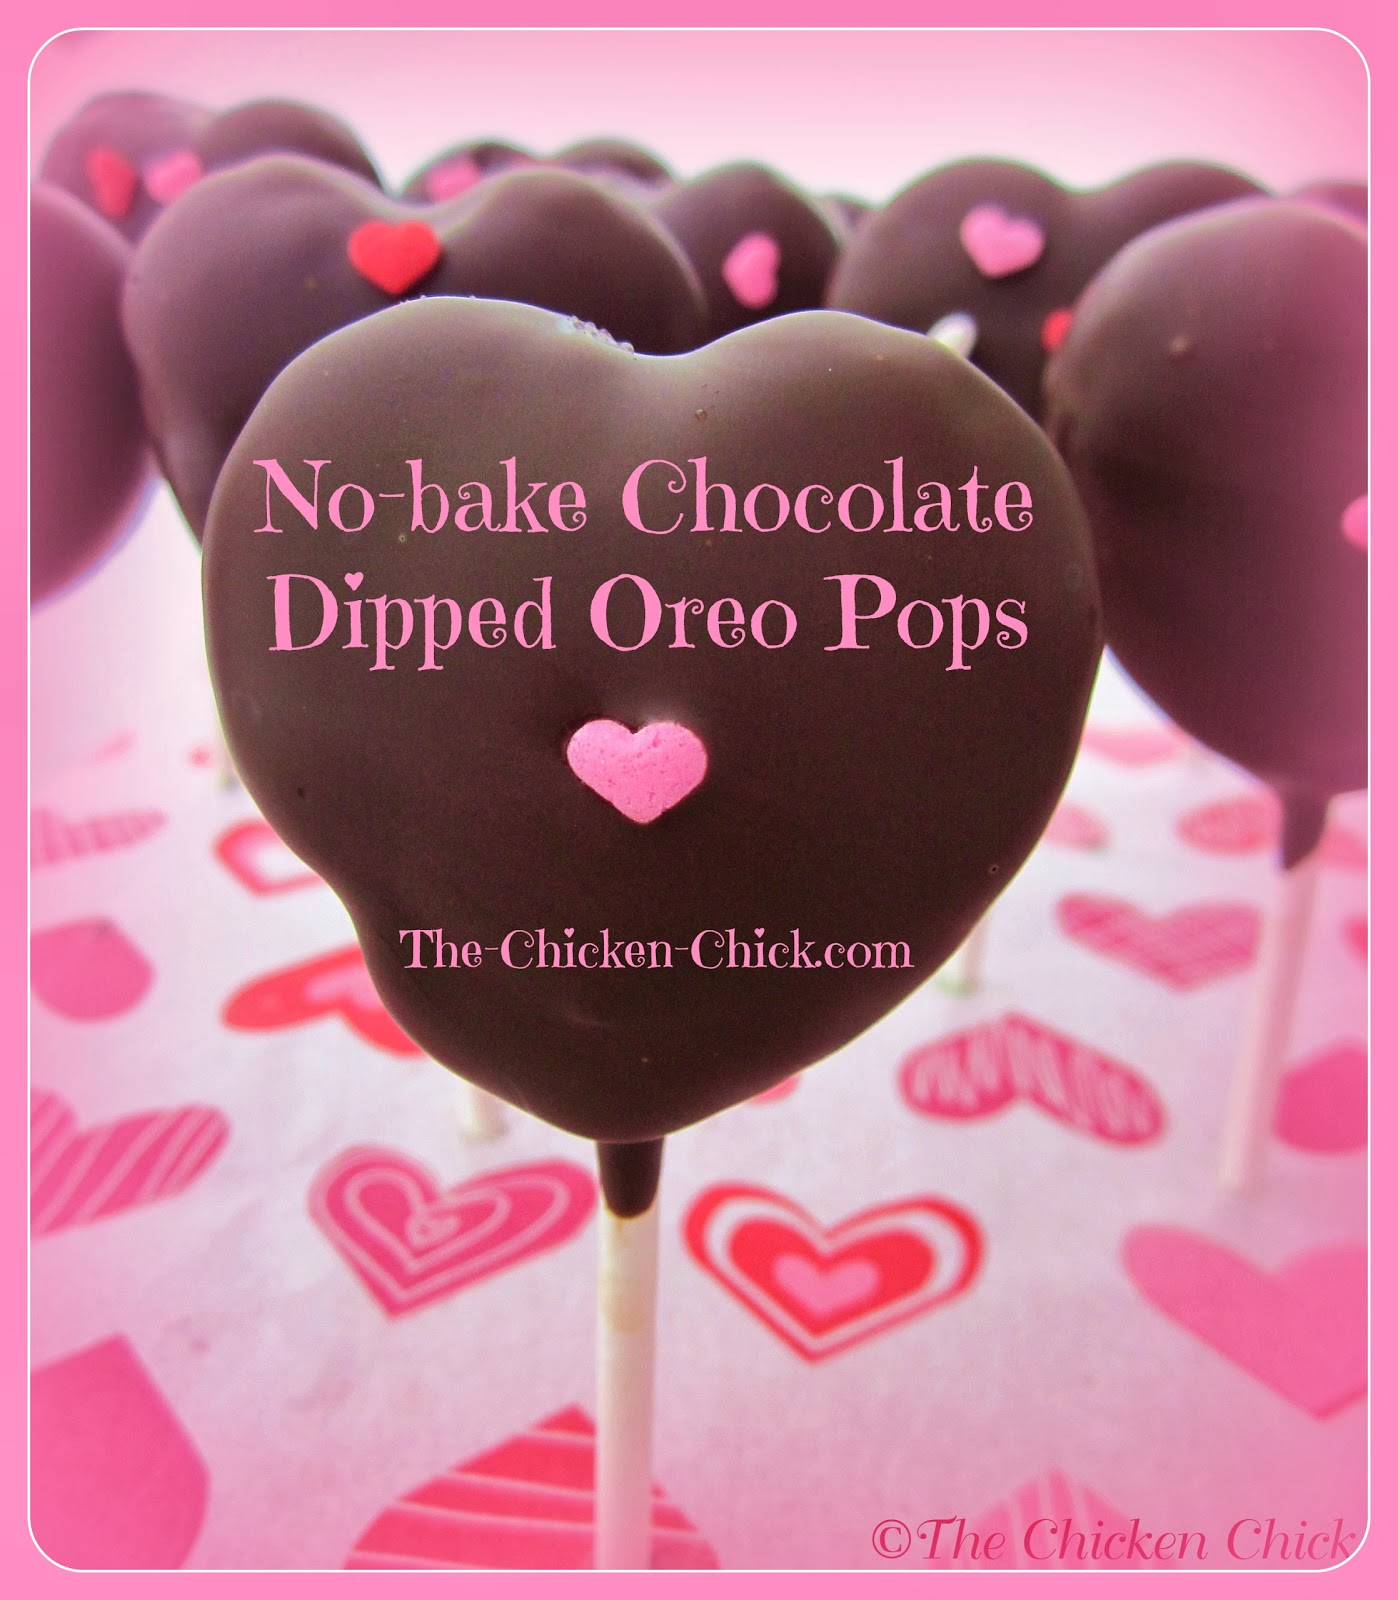 No-bake Chocolate Dipped Oreo Pops tutorial